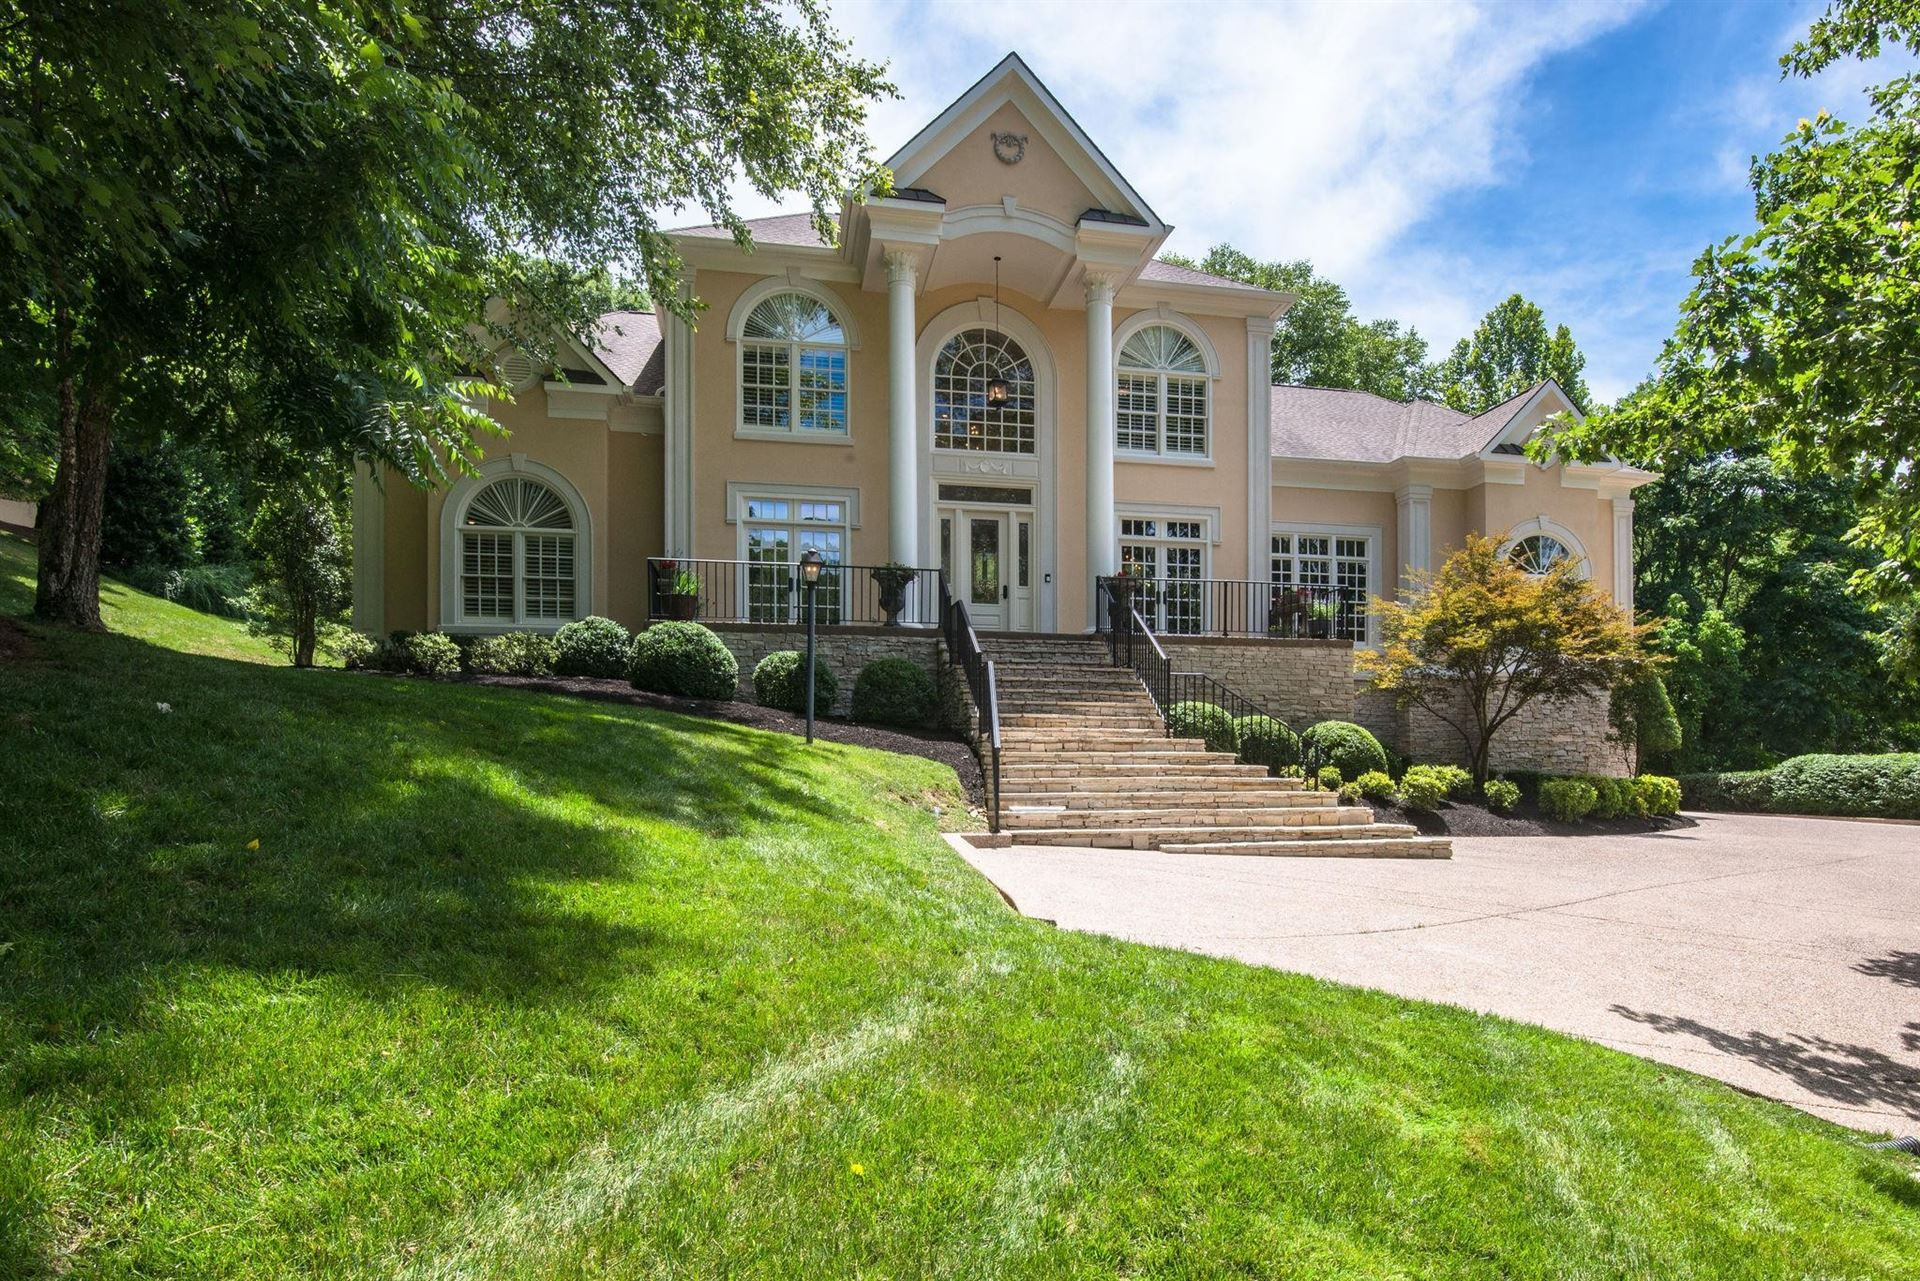 Photo of 561 Grand Oaks Dr, Brentwood, TN 37027 (MLS # 2133783)